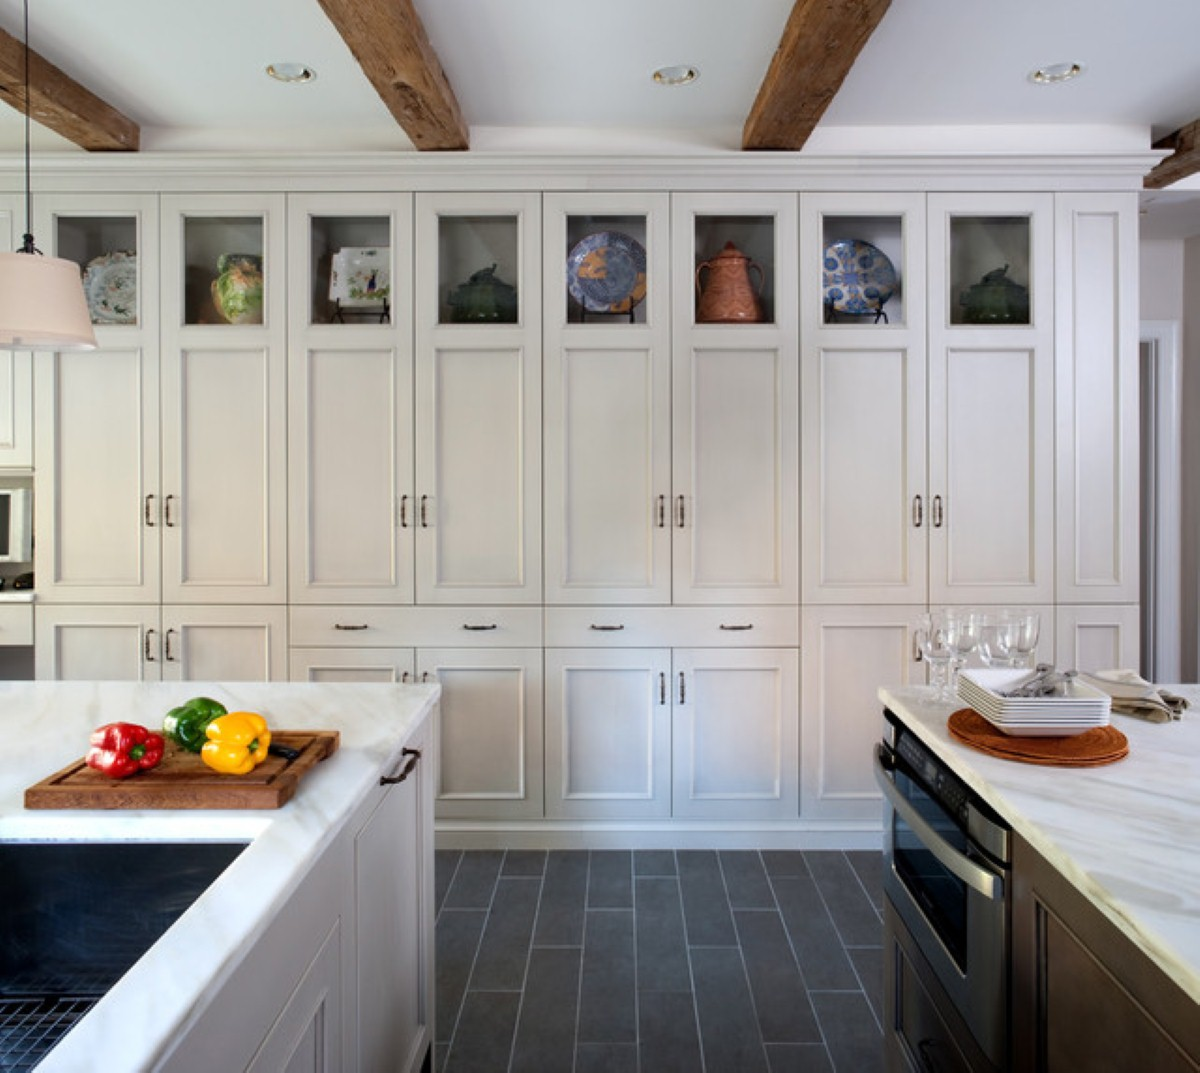 Floor To Ceiling Kitchen Units Everything In Its Place Storage Solutions Hire A Hubby Blog